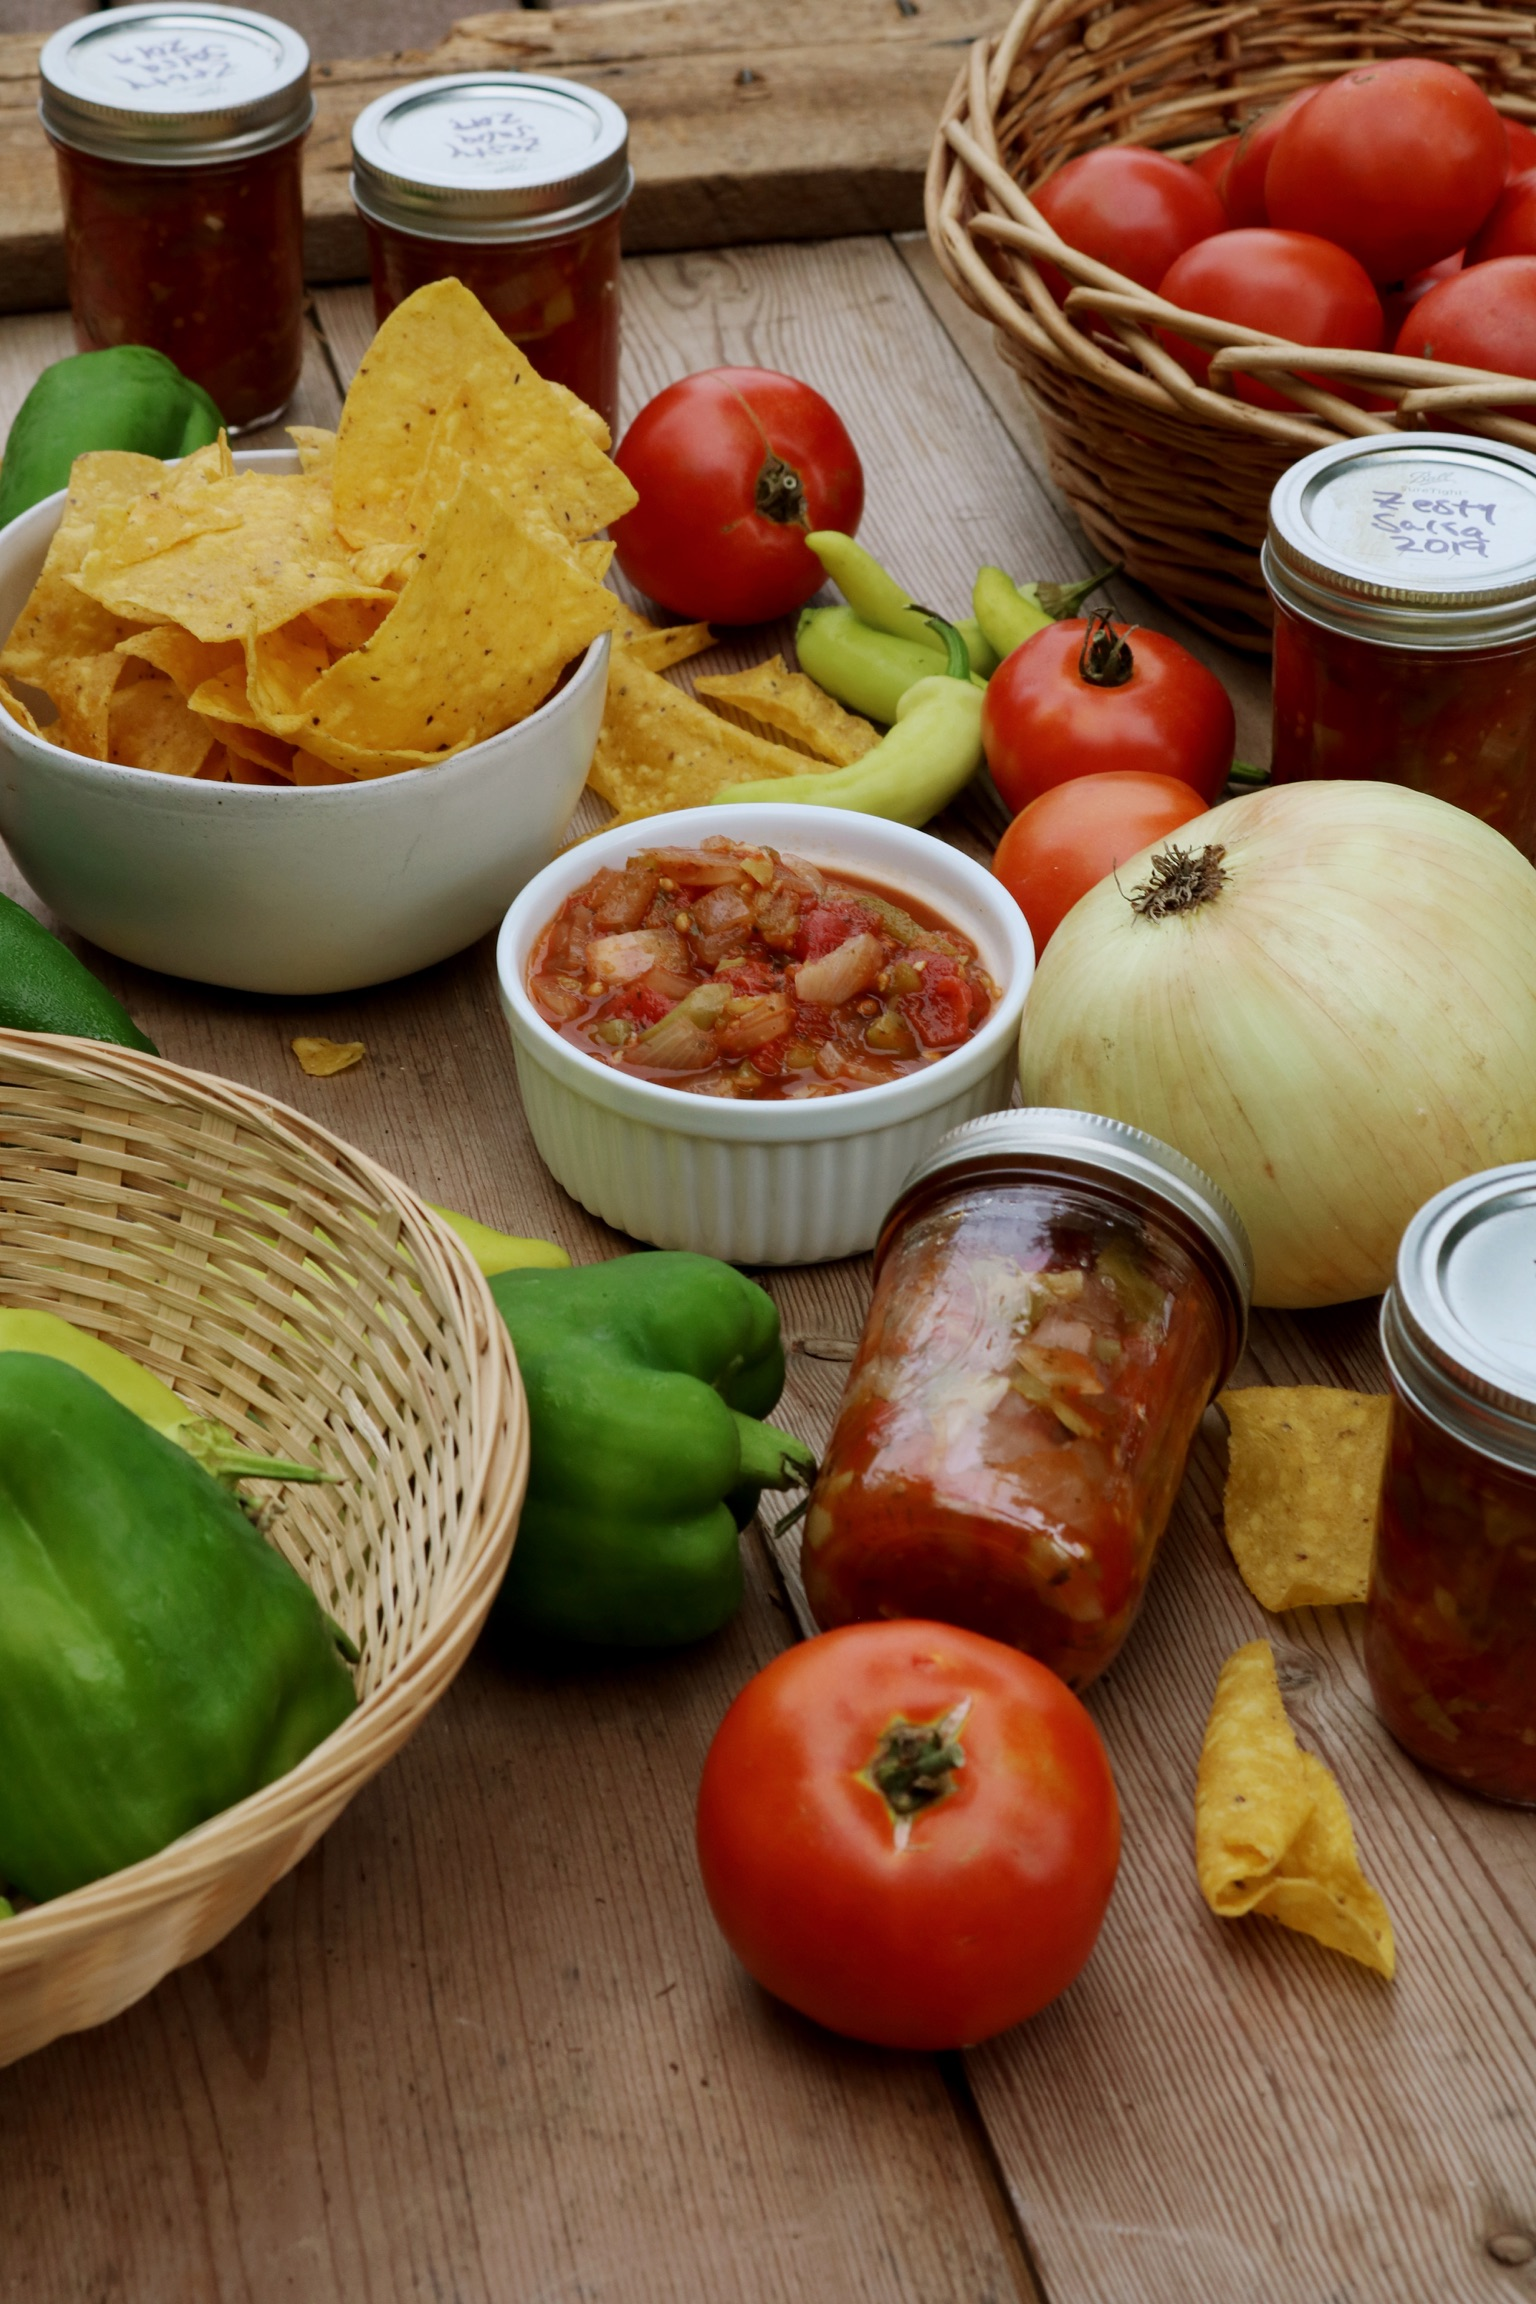 Zesty Salsa & Canning Recipe - Under A Tin Roof Blog